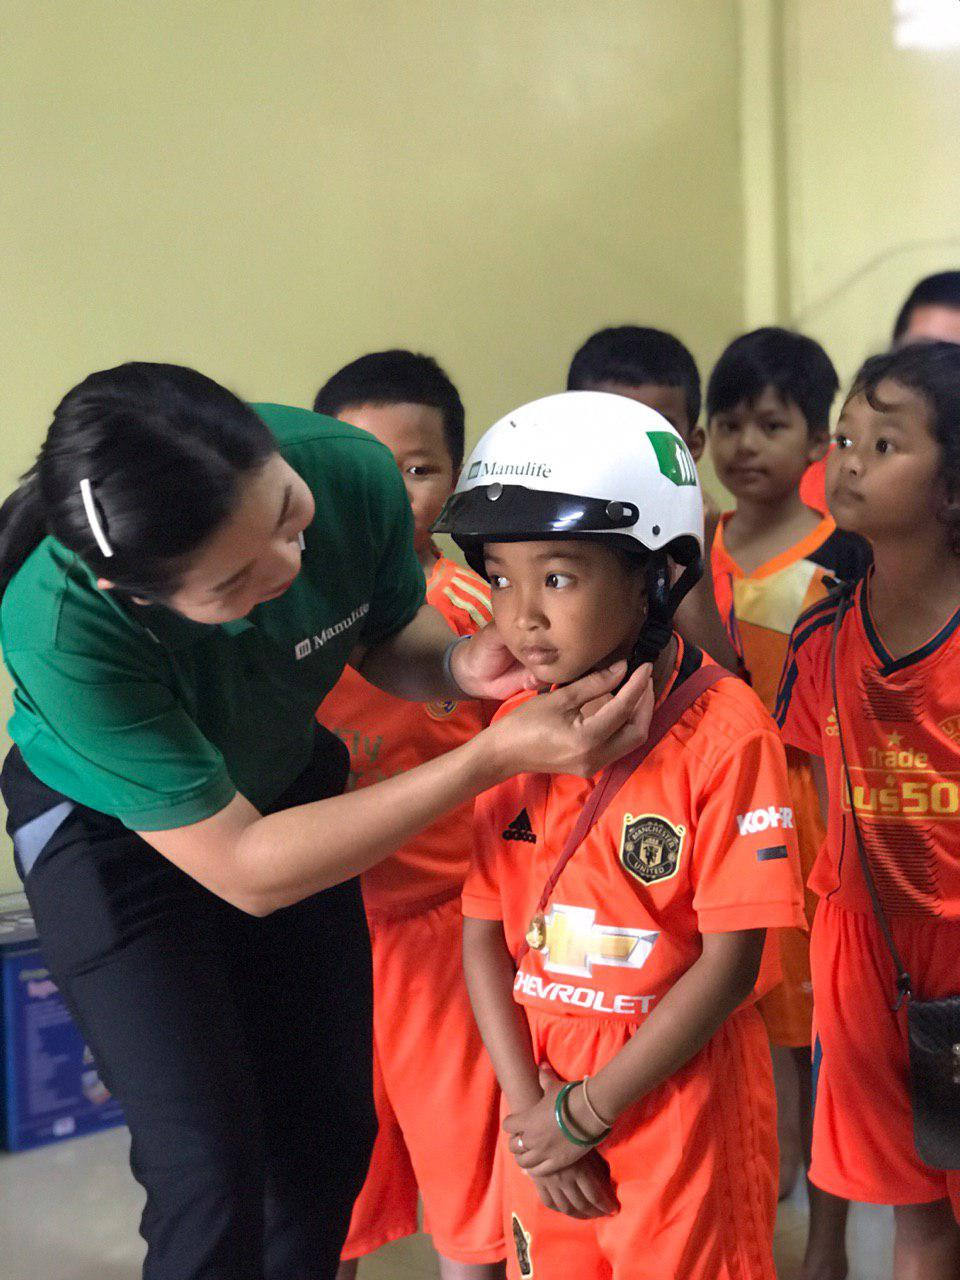 Manulife Cambodia volunteer helps student with helmet fitting.